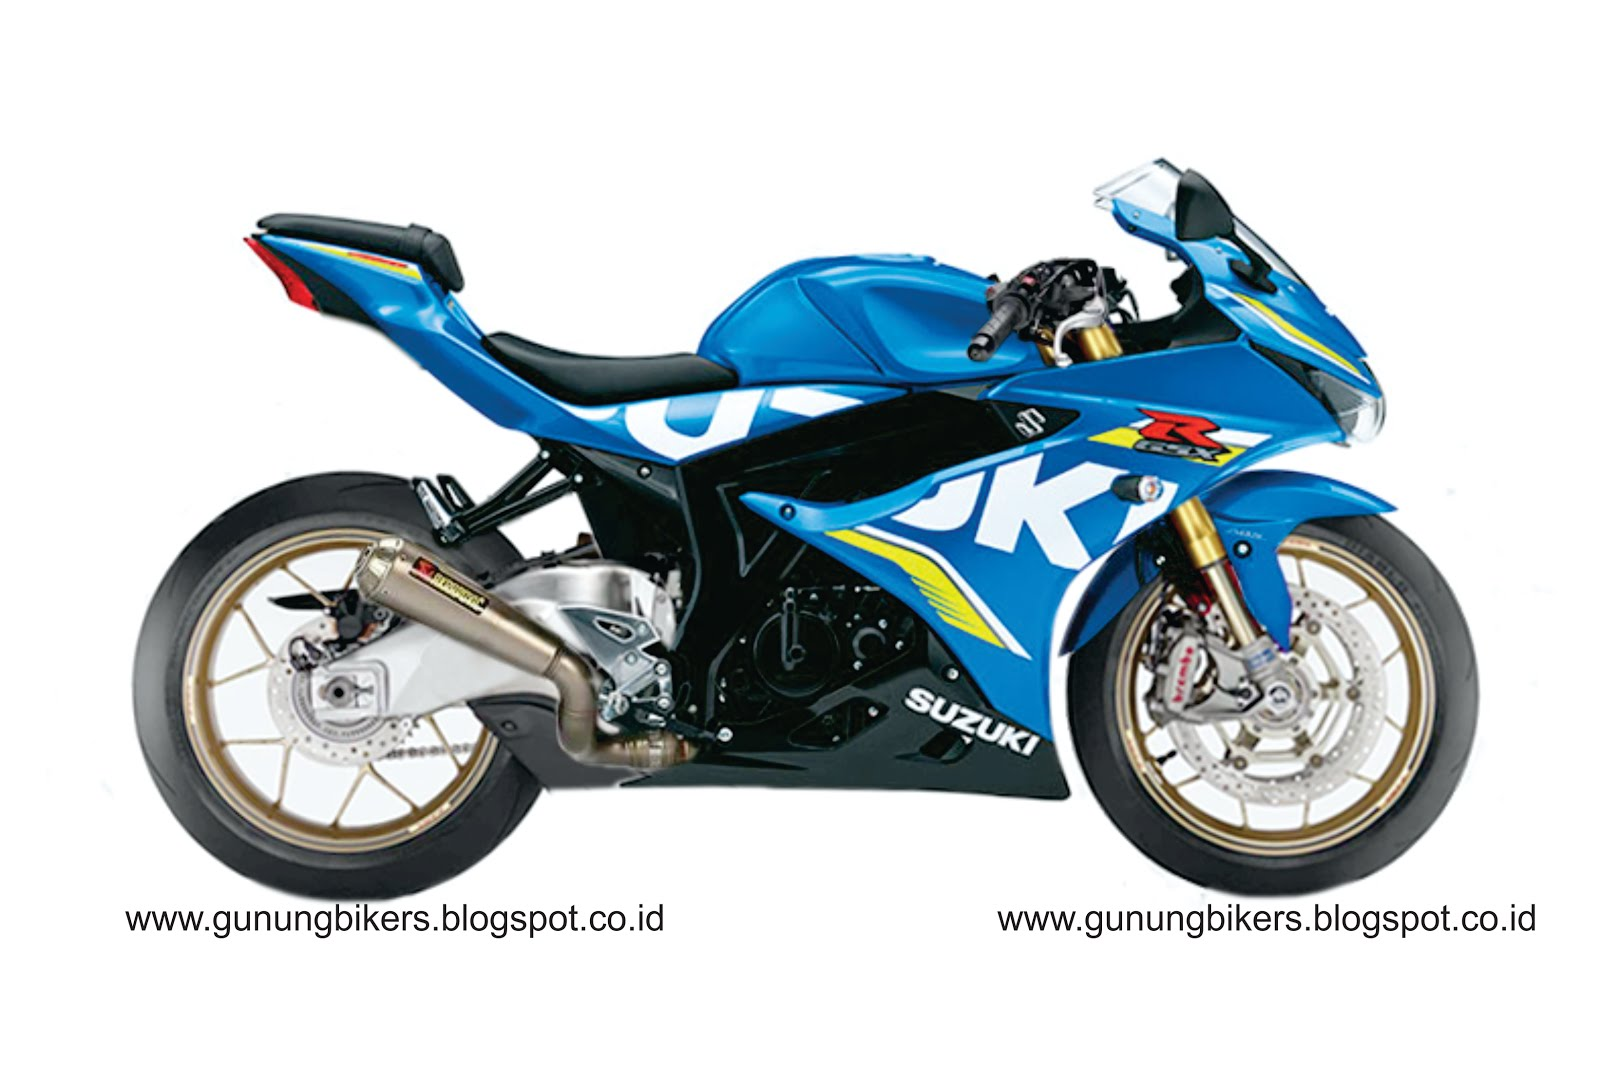 100 Komparasi Suzuki Gsx R150 Vs 2010 New Sports